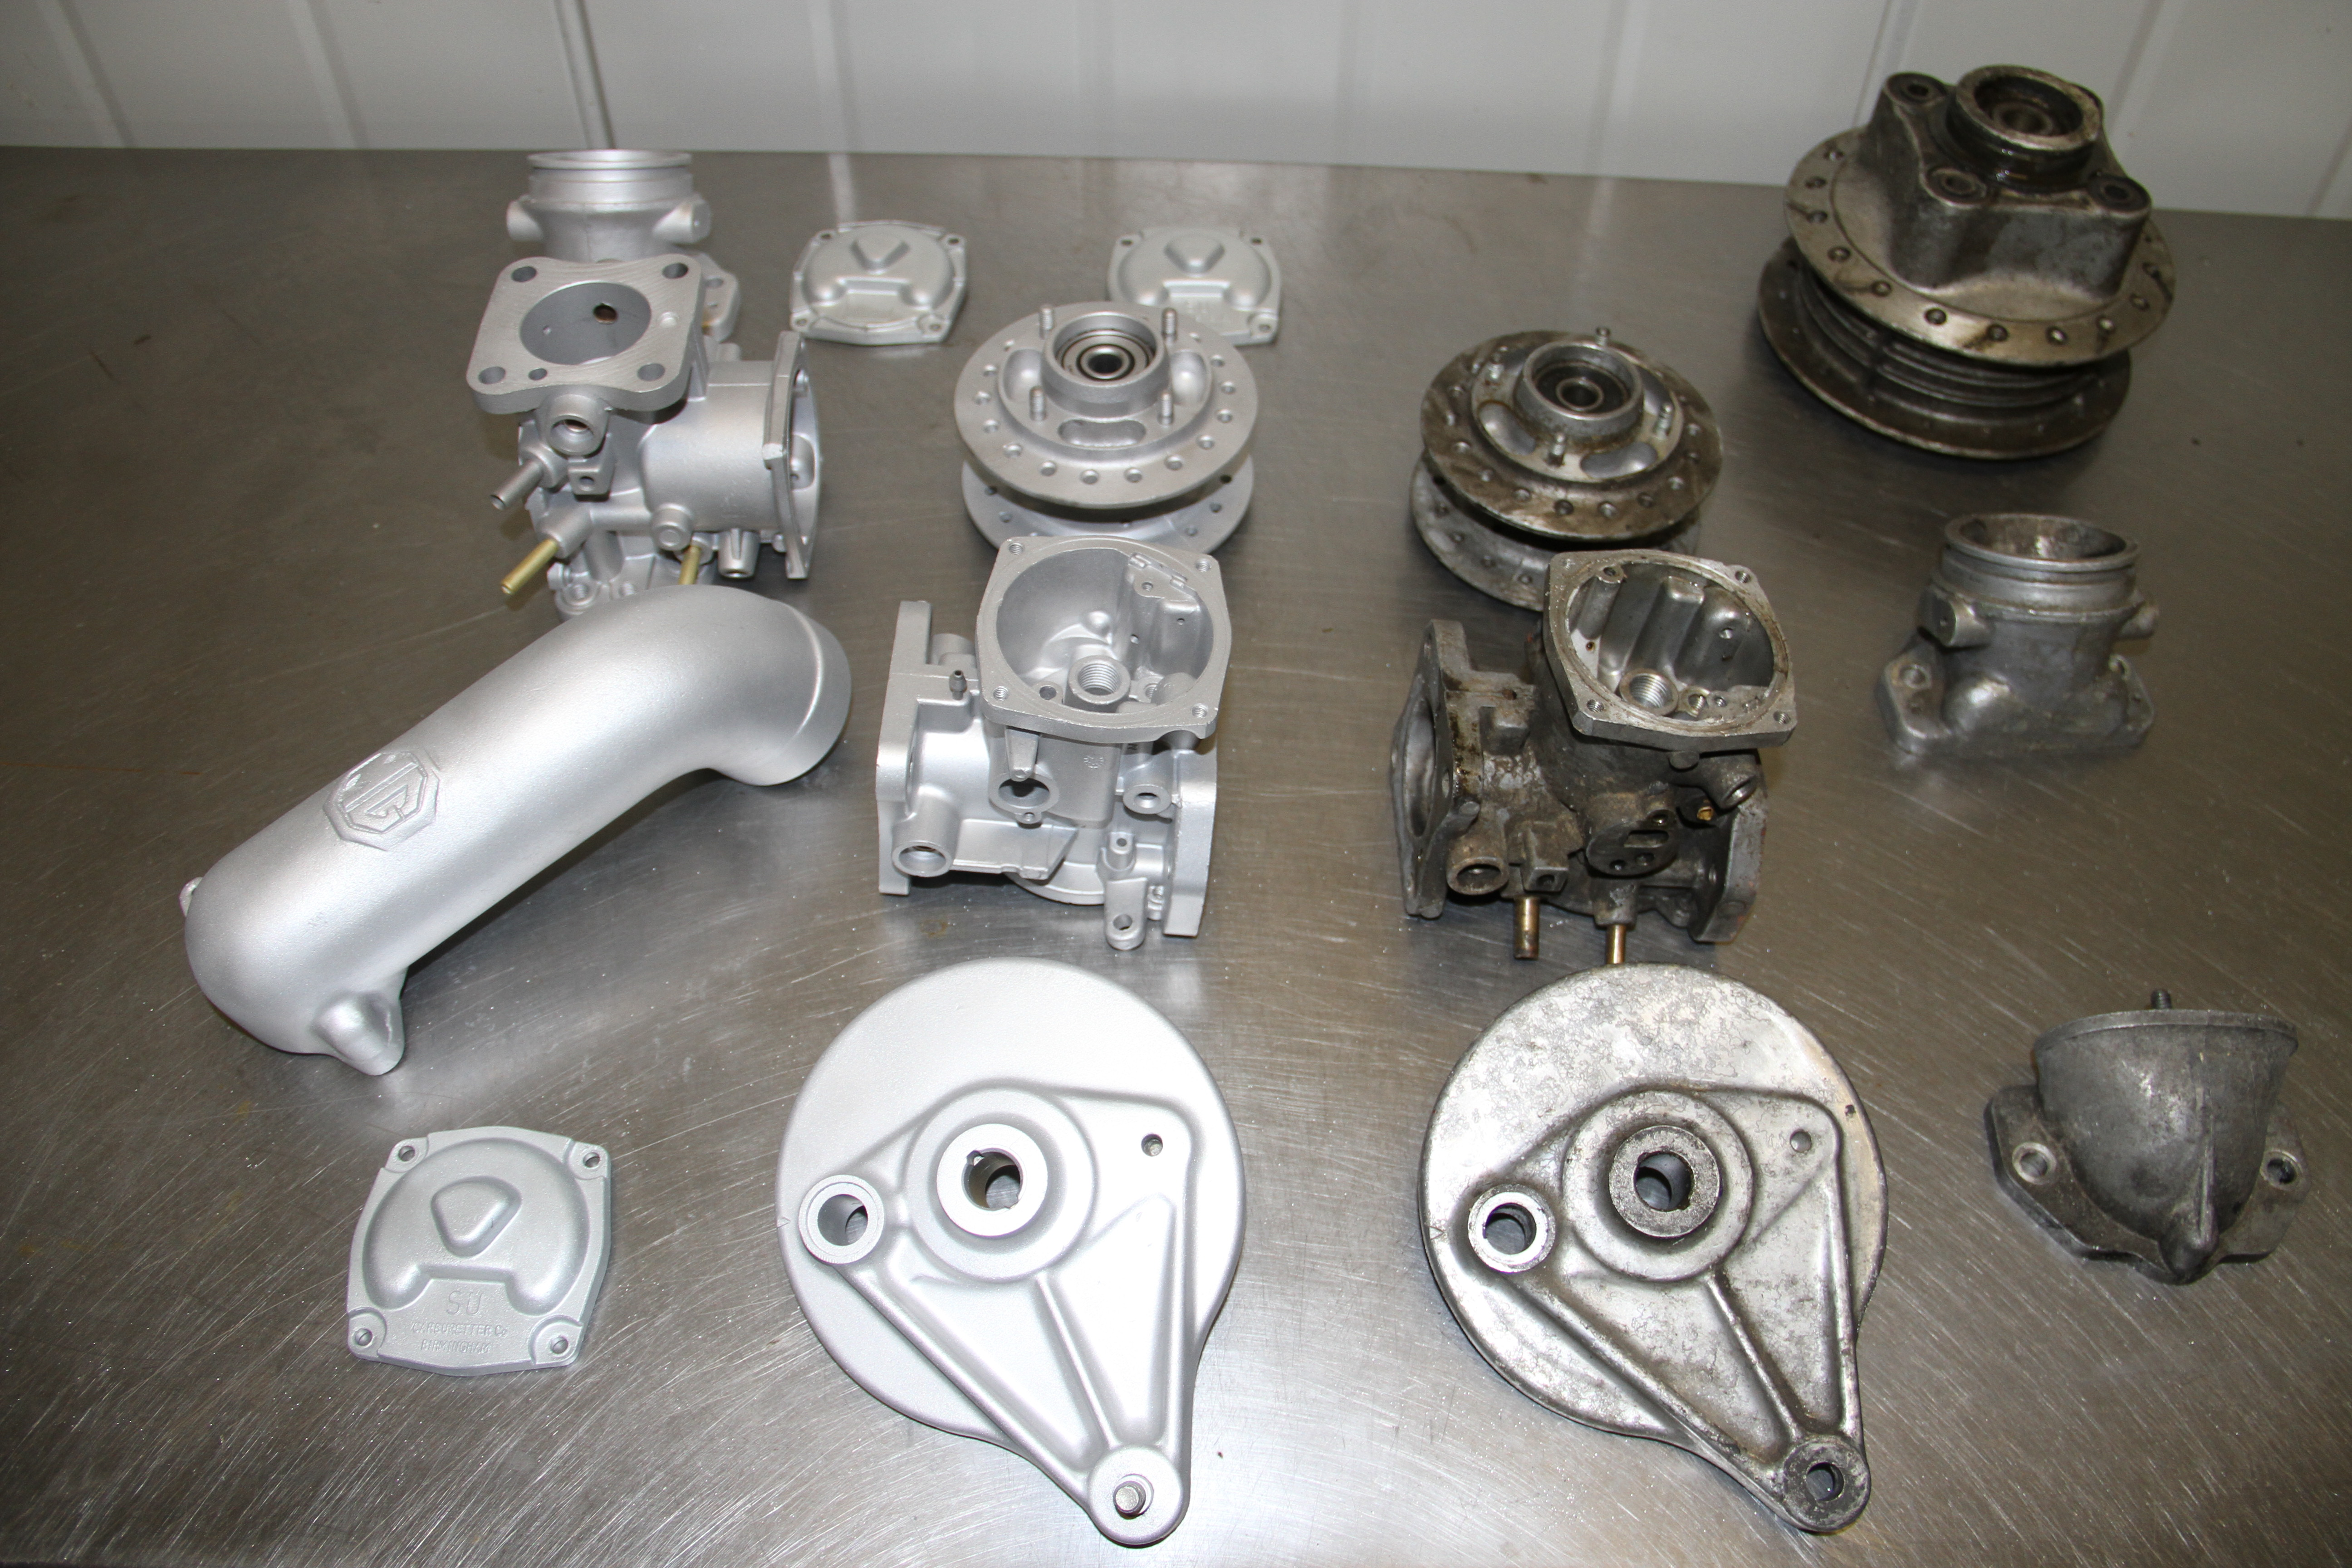 Vapour blasted engine parts